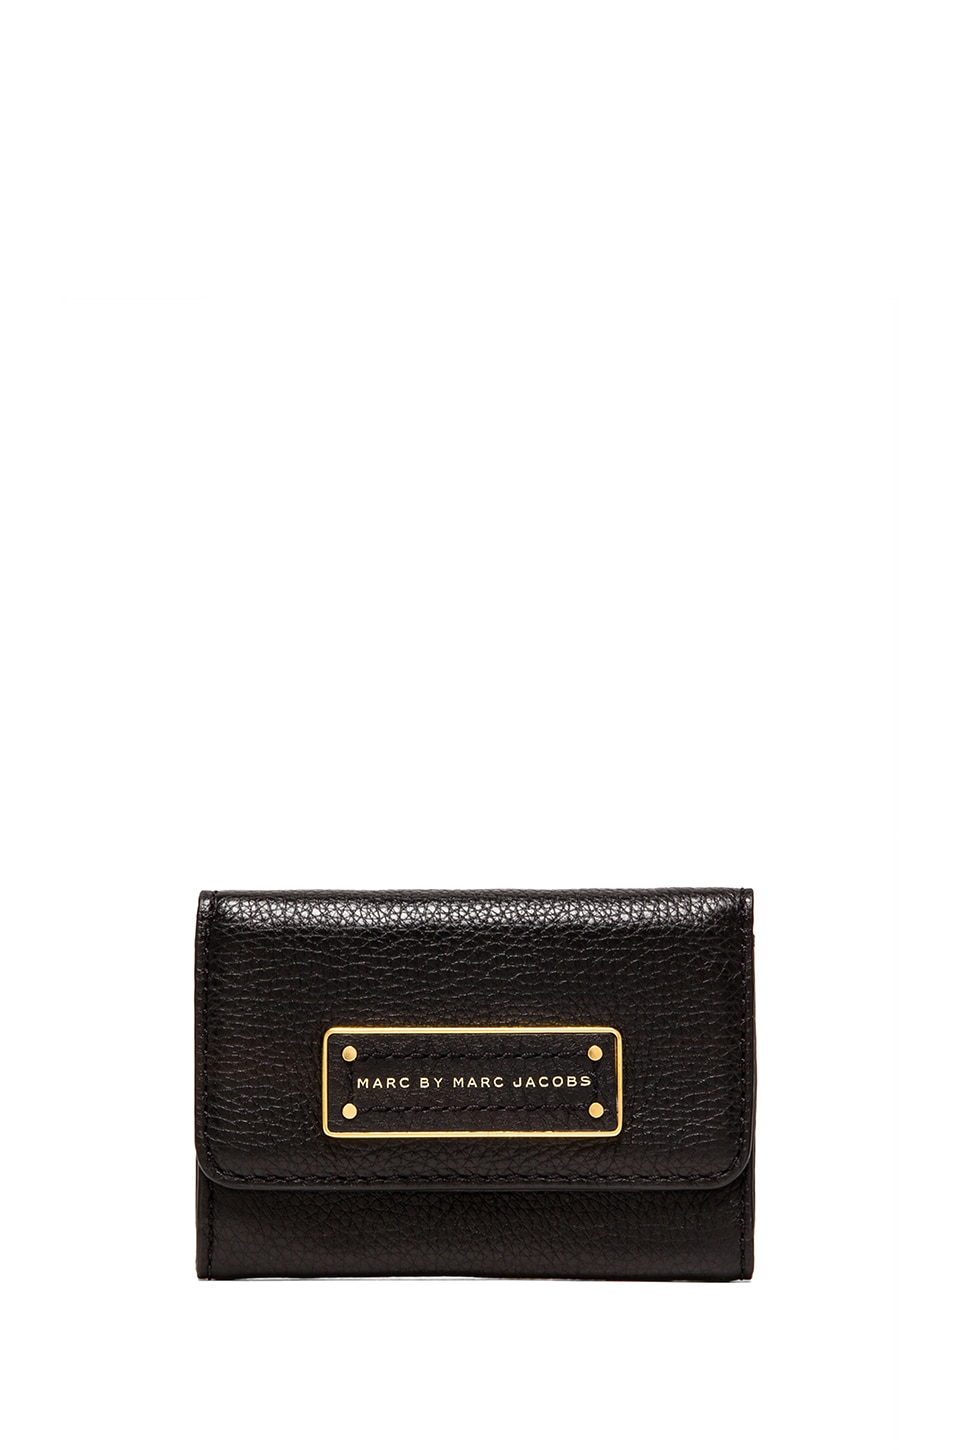 Marc by Marc Jacobs Too Hot To Handle Card Case in Black